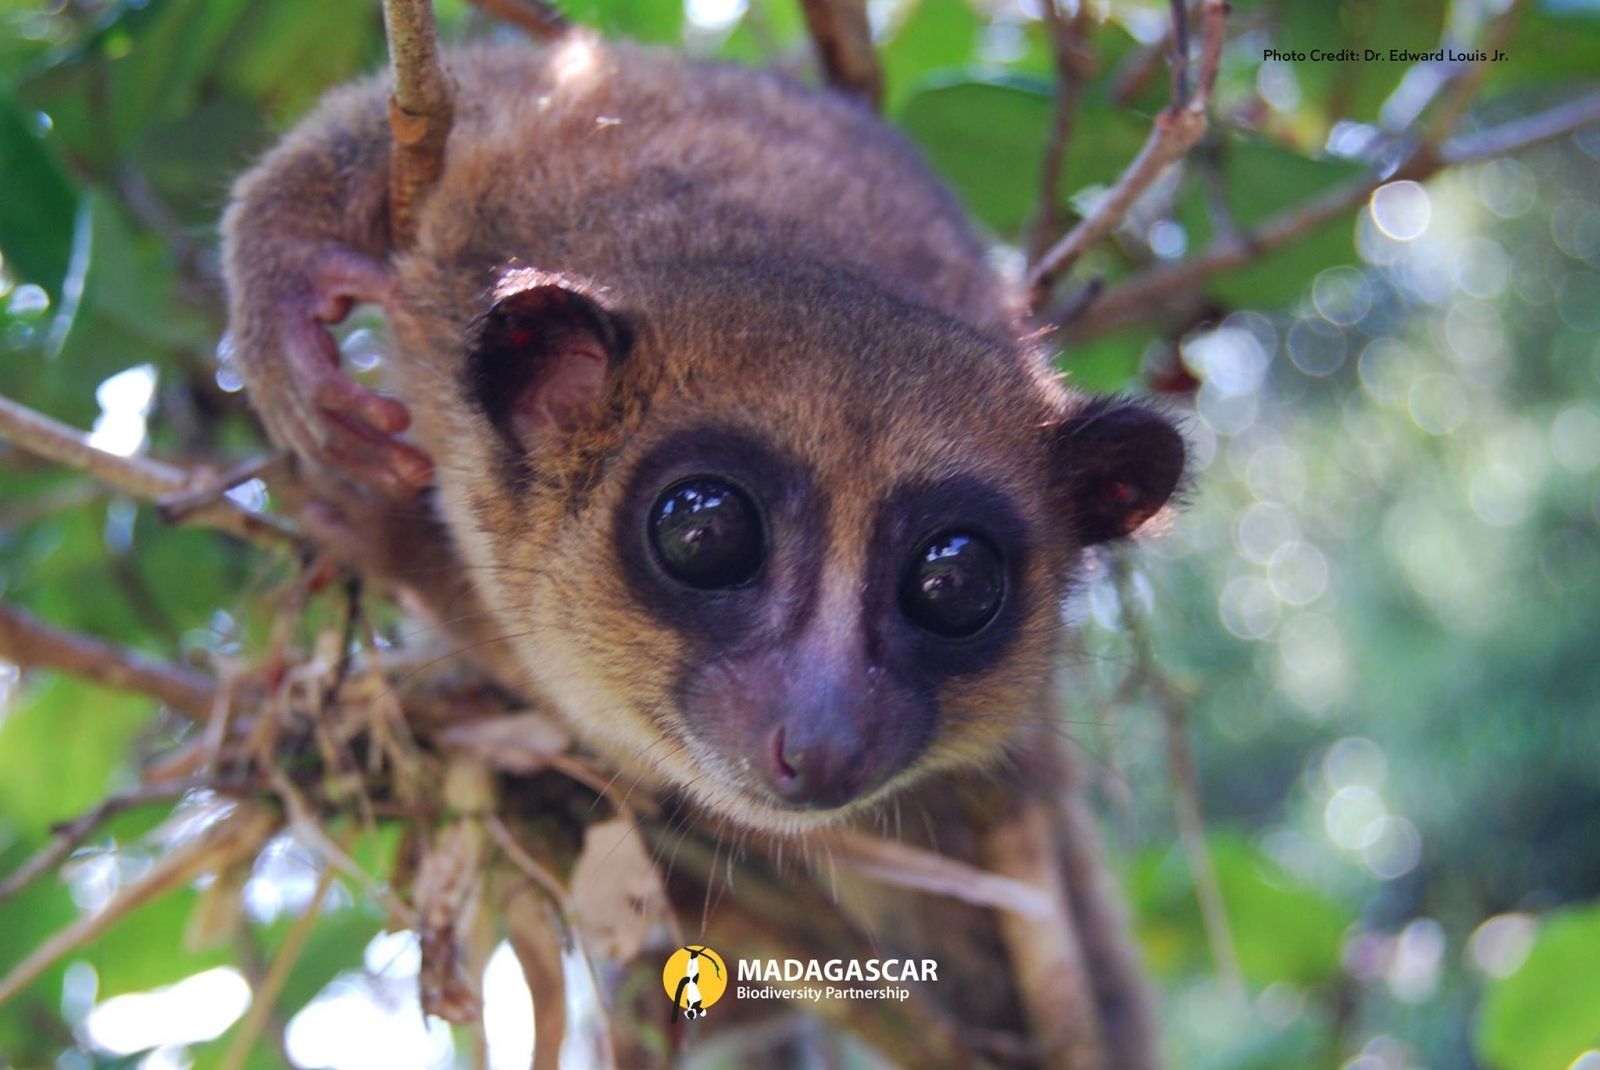 an introduction to the various species of lemurs in the world today How many lemurs are left in the world a: exact number of lemurs left in the world, as new species are 260 different species of monkeys in the world.